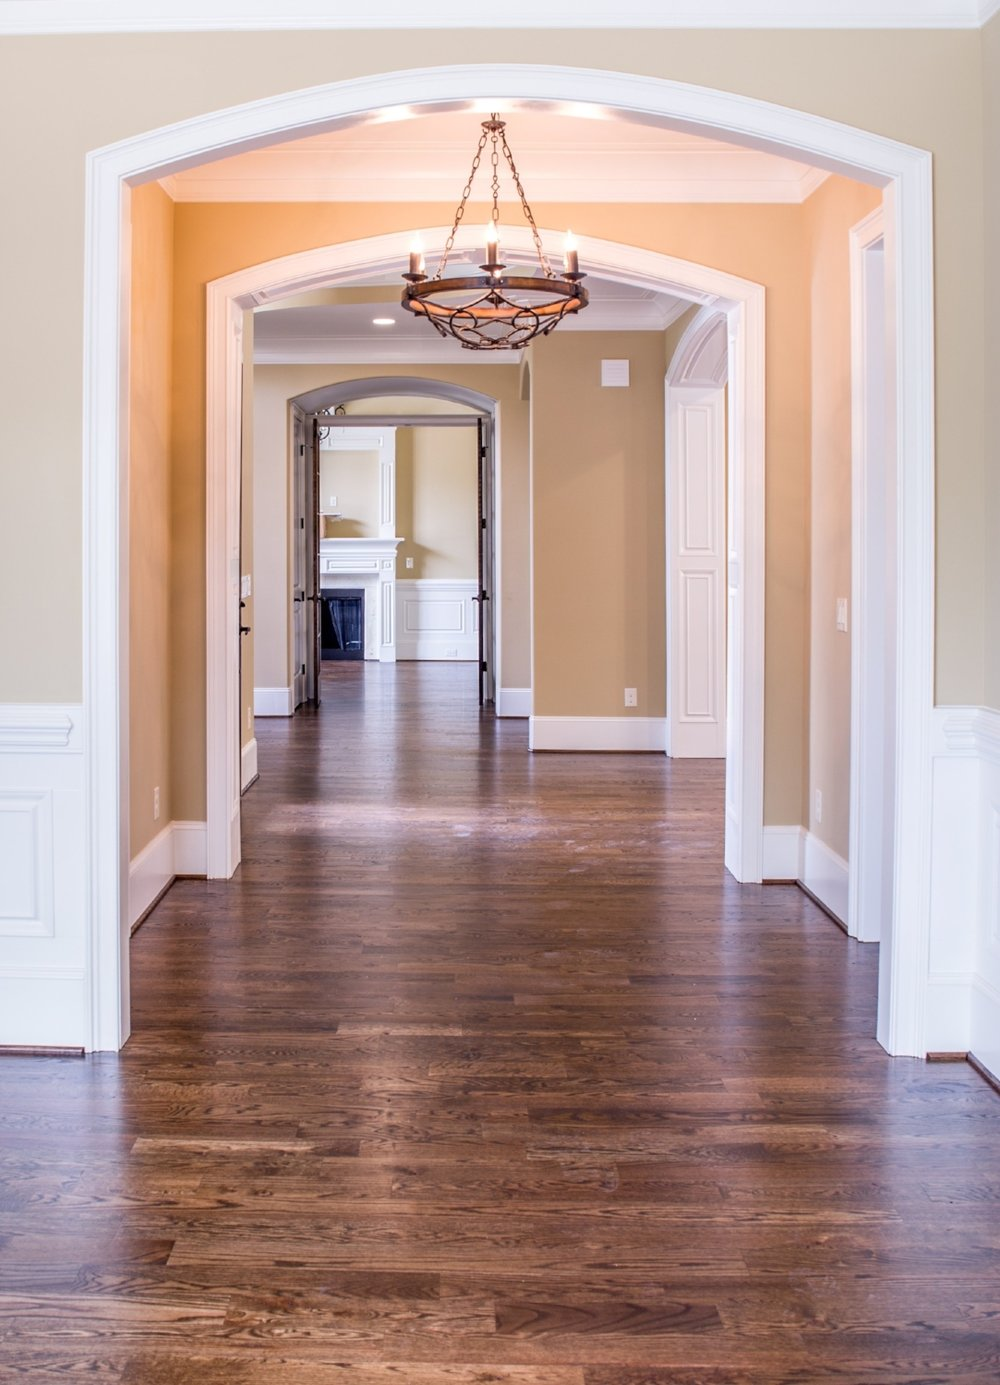 custom-millwork-mouldings-archways-architecture-chandelier-clean-210463.jpg